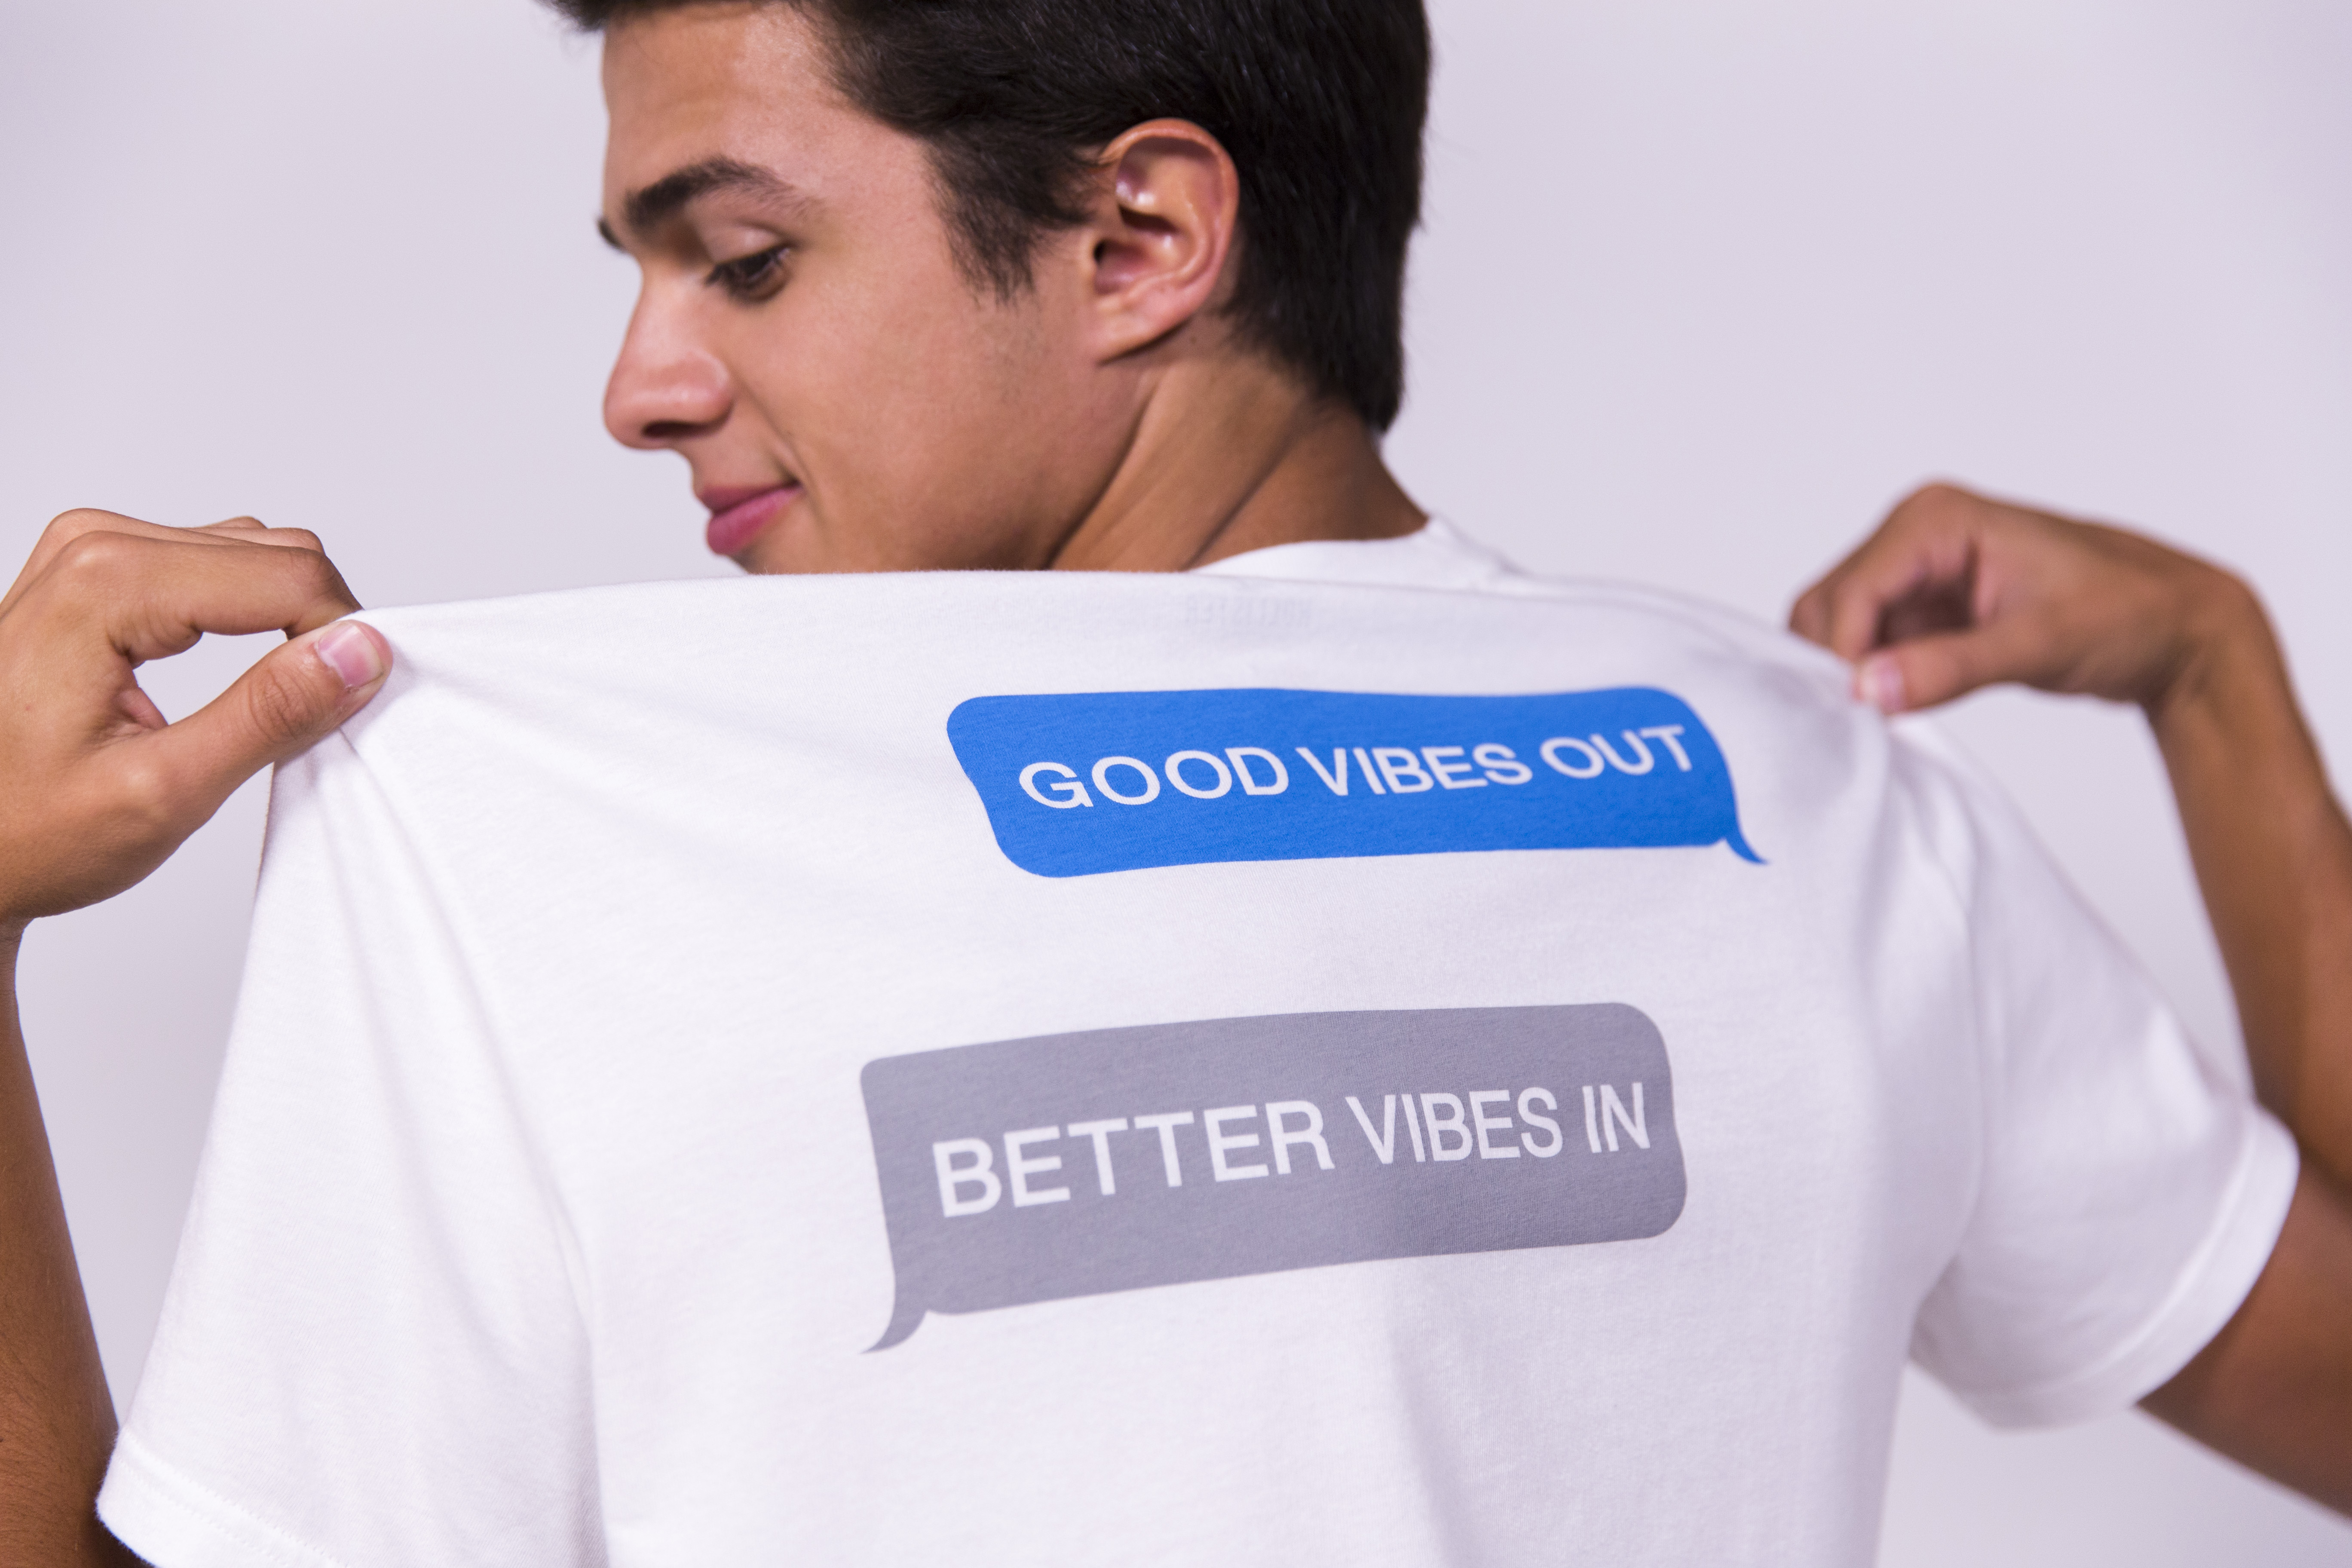 youtuber brent rivera fronts hollister s bullying campaign